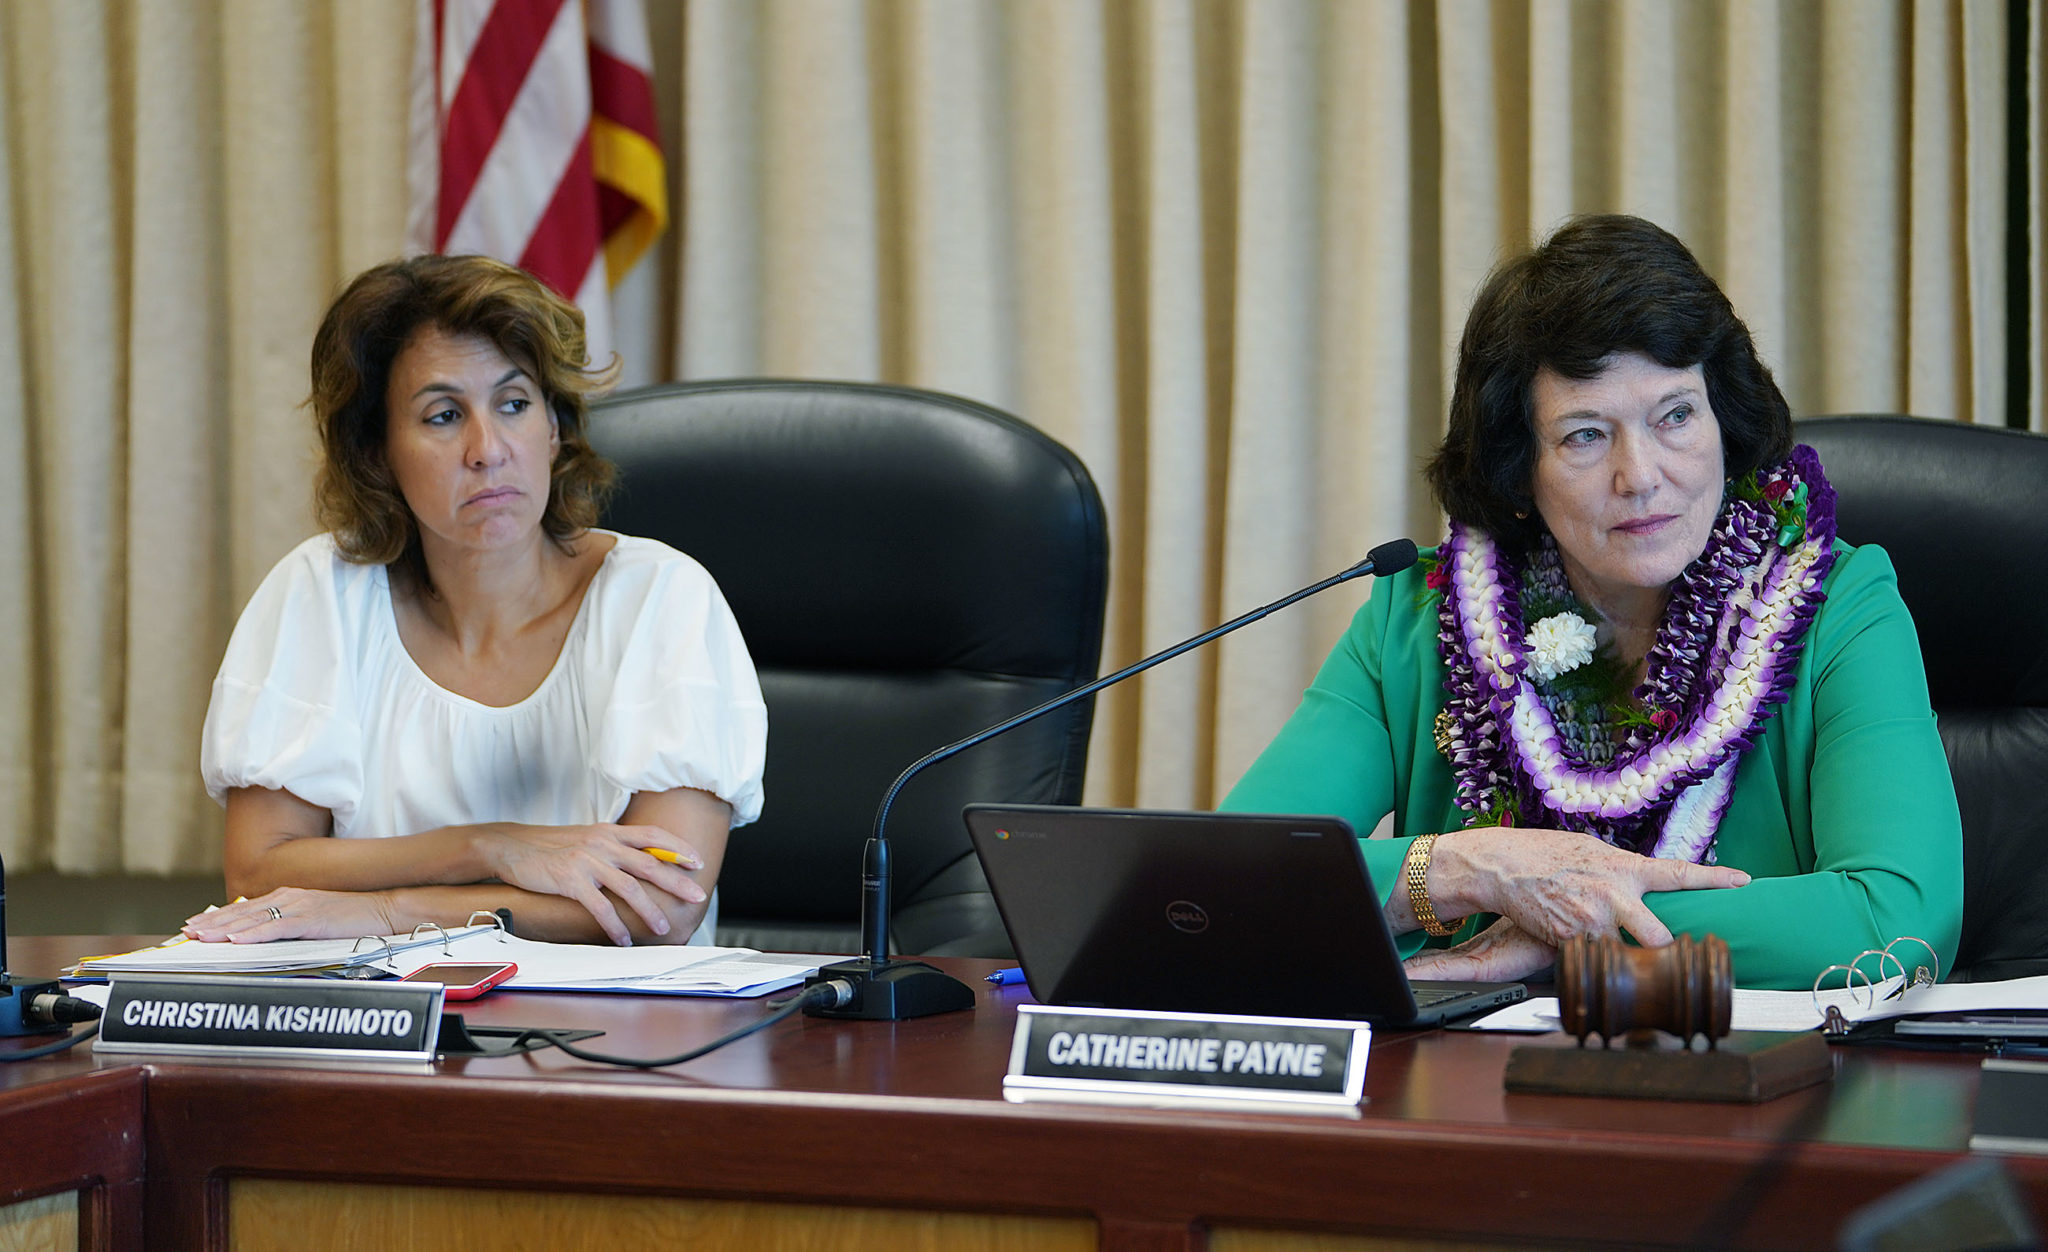 Education Superintendent Christina Kishimoto and right, Catherine Payne during Board of Education meeting.